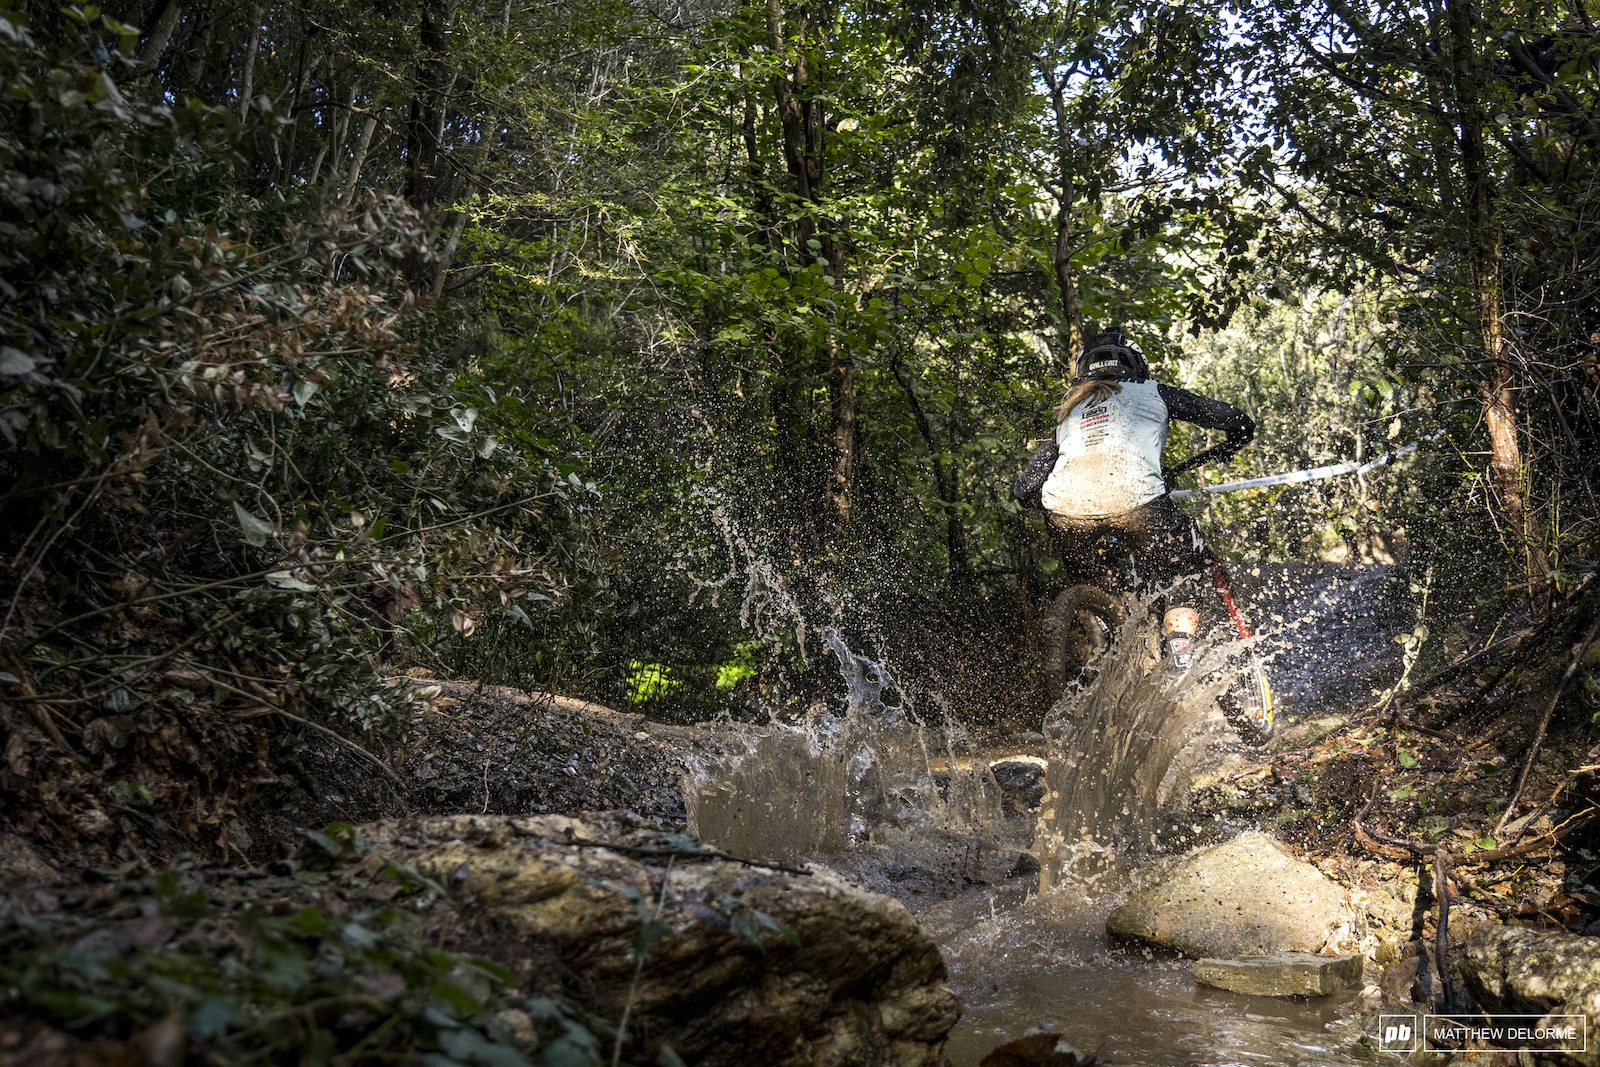 Chloe Gallean plows through the post deluge creek on stage 2.